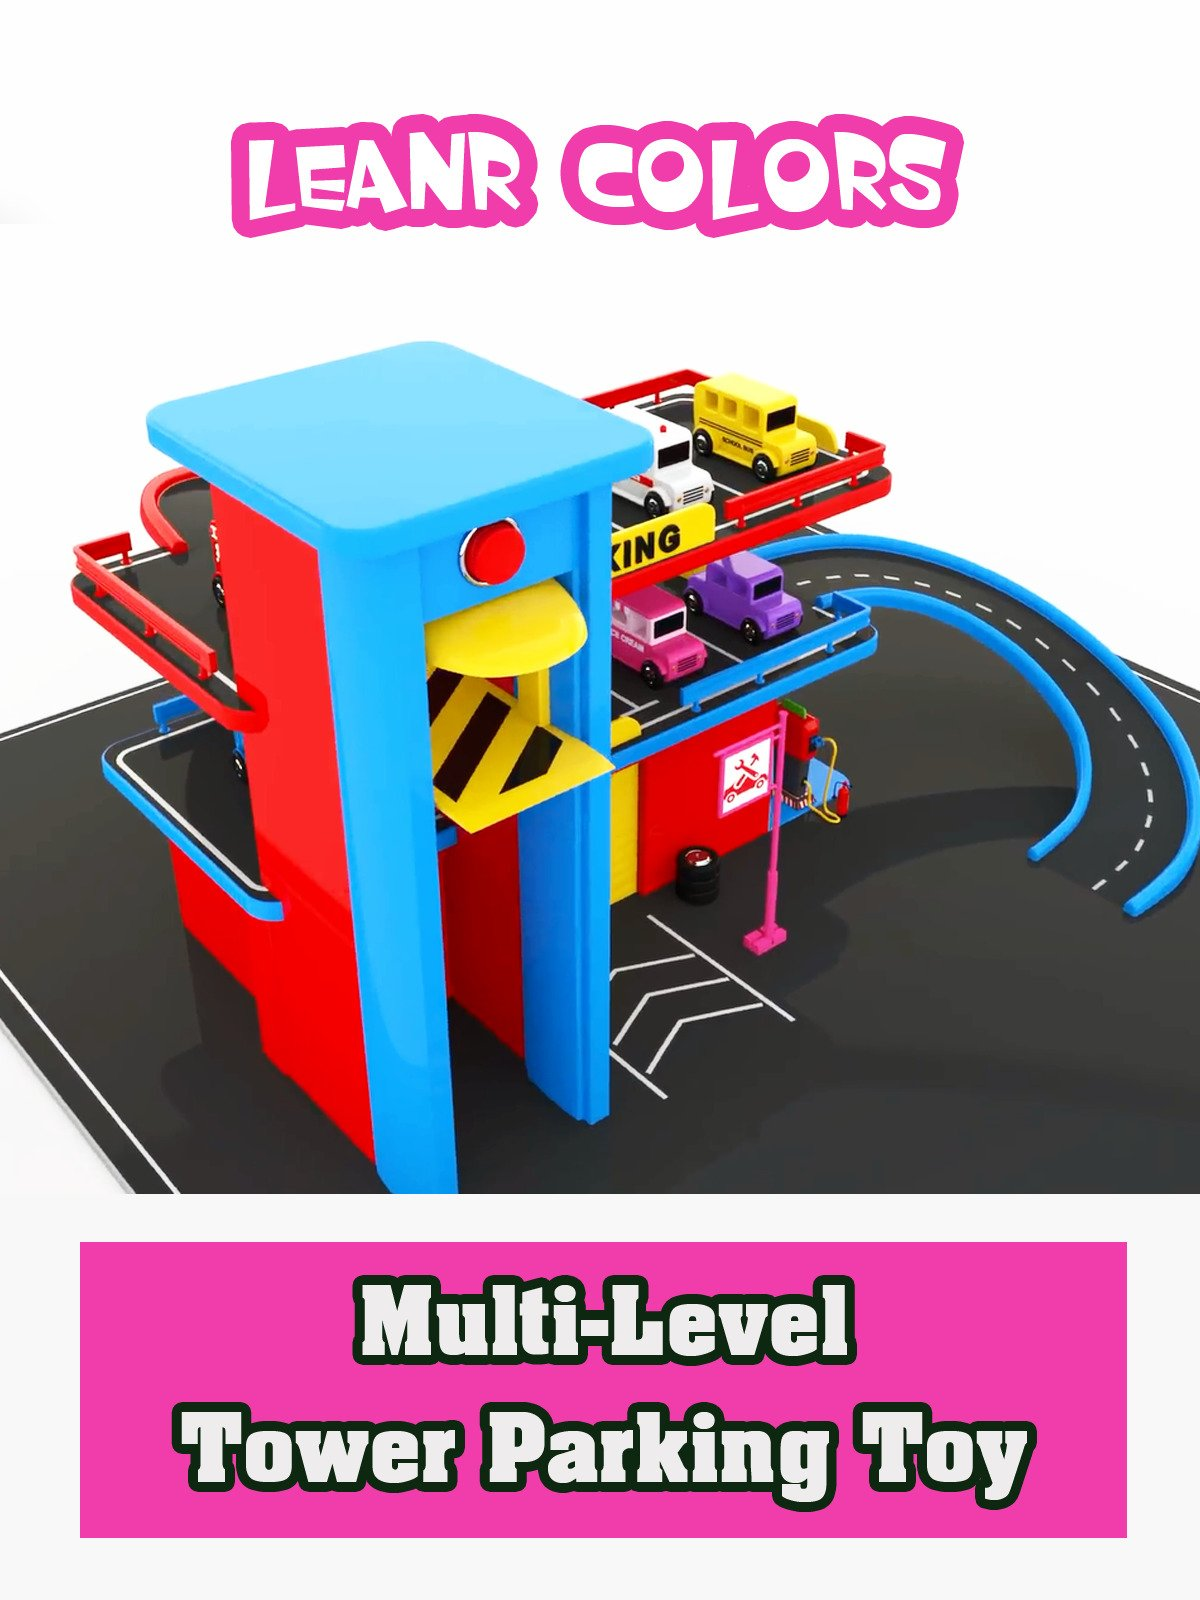 Learn Colors with Multi-Level Tower Parking Toy